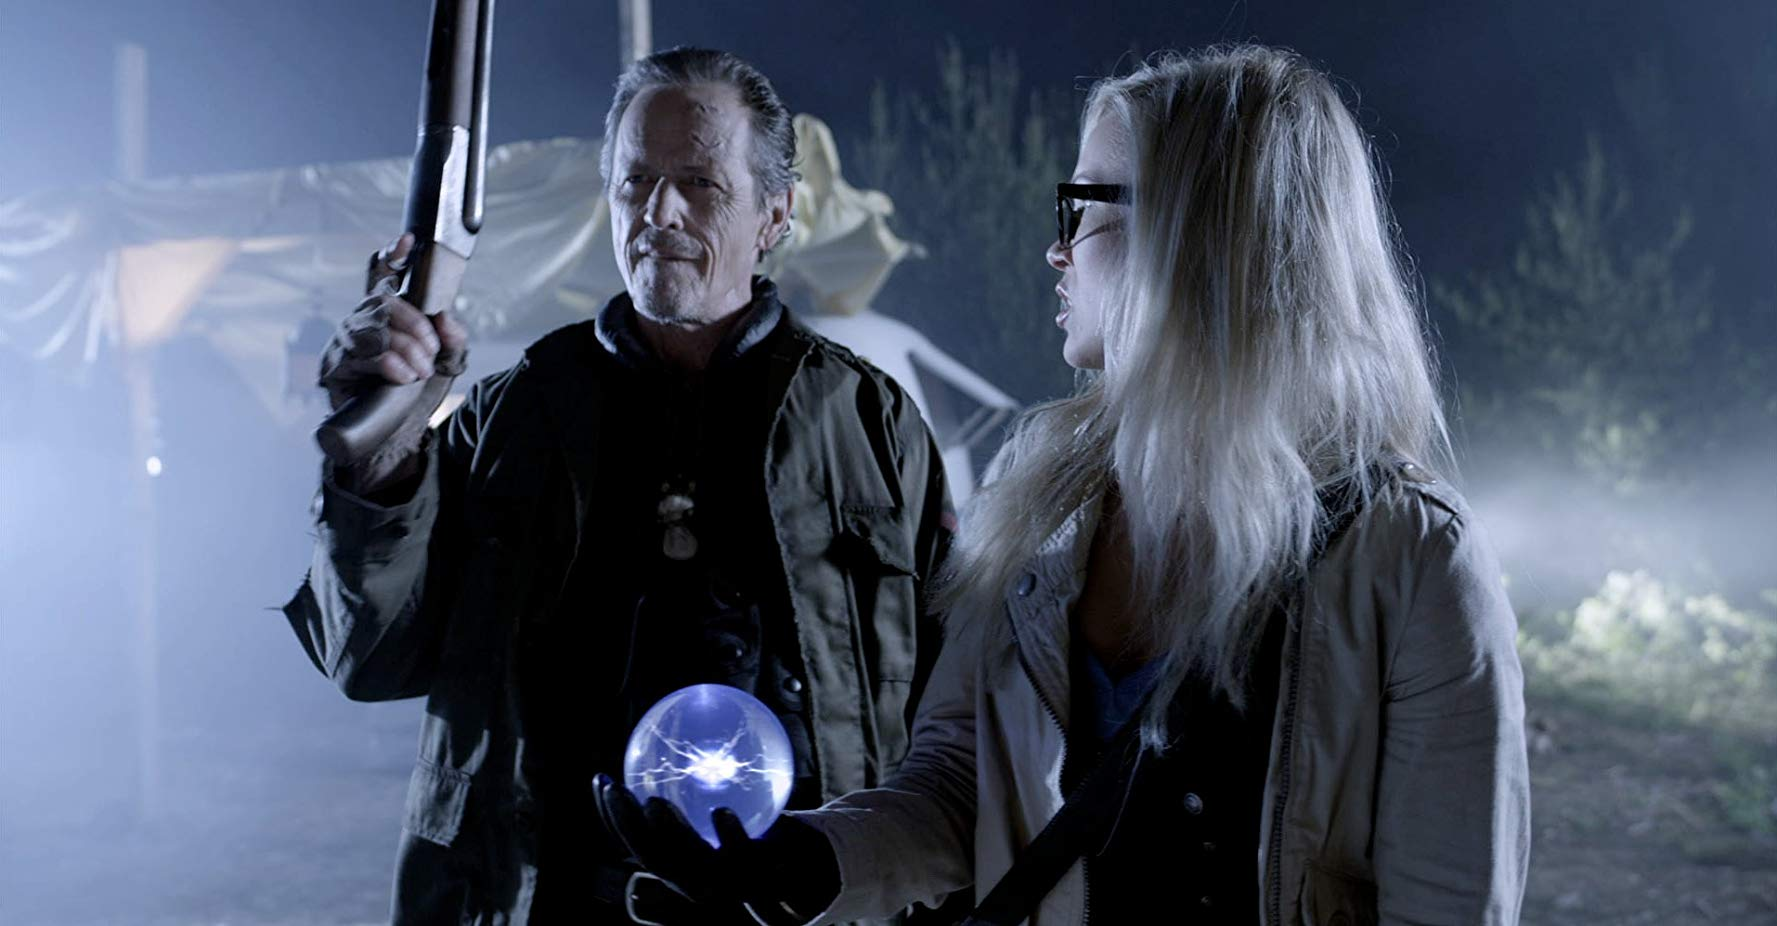 Zombie hunter Stephen McHattie and his assistant Emilie Ullerup in A Little Bit Zombie (2012)